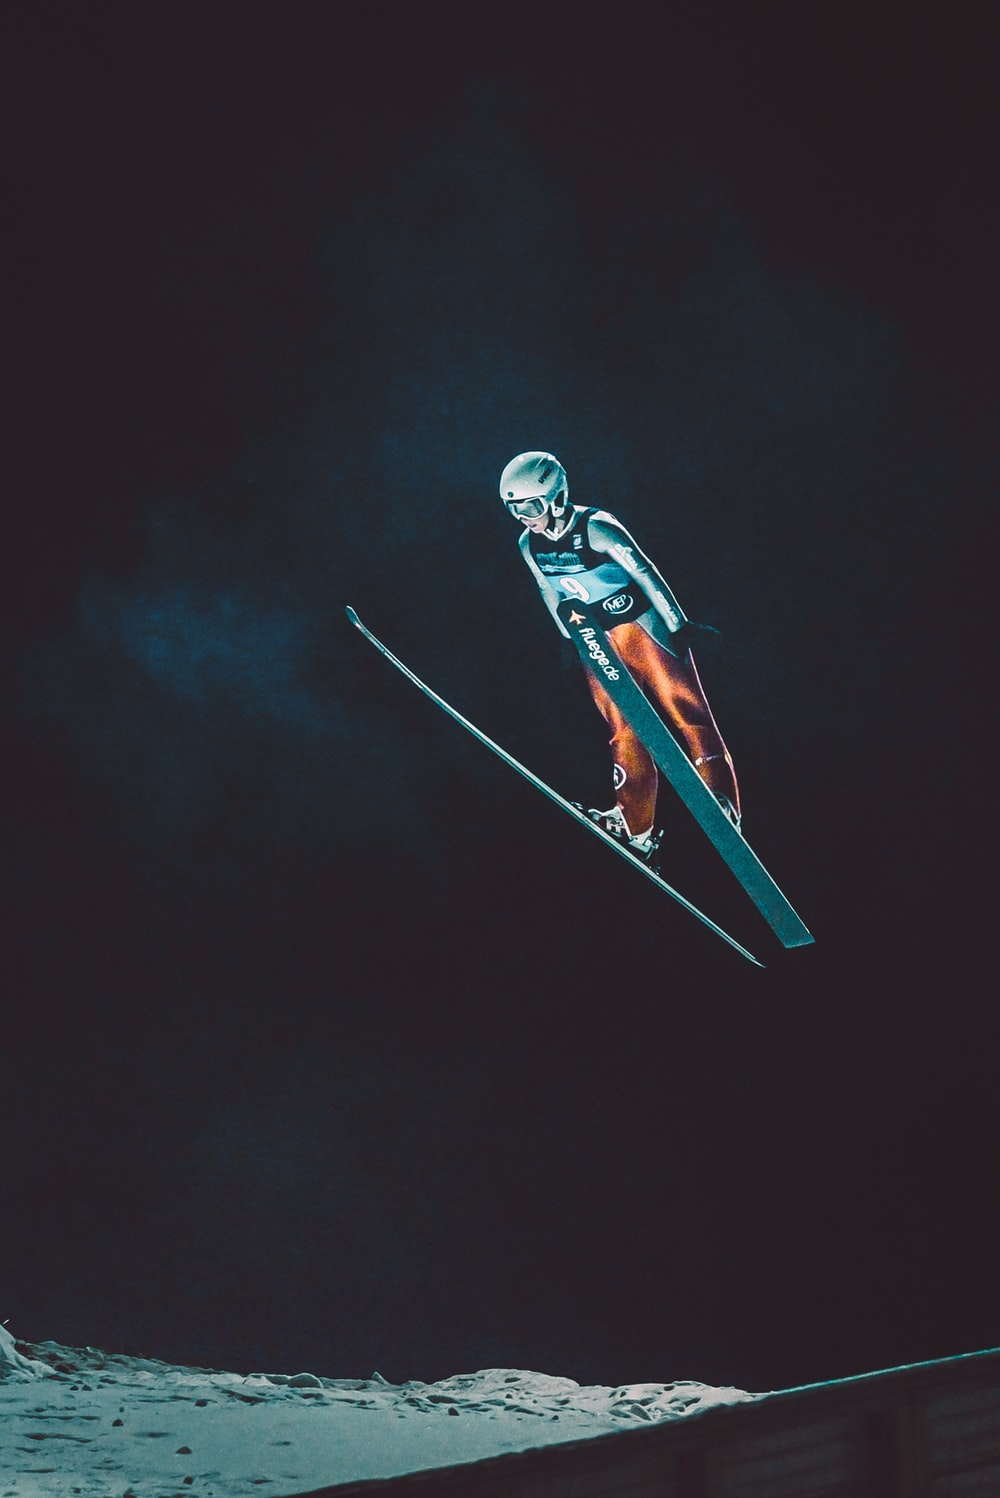 person skiing during nighttime